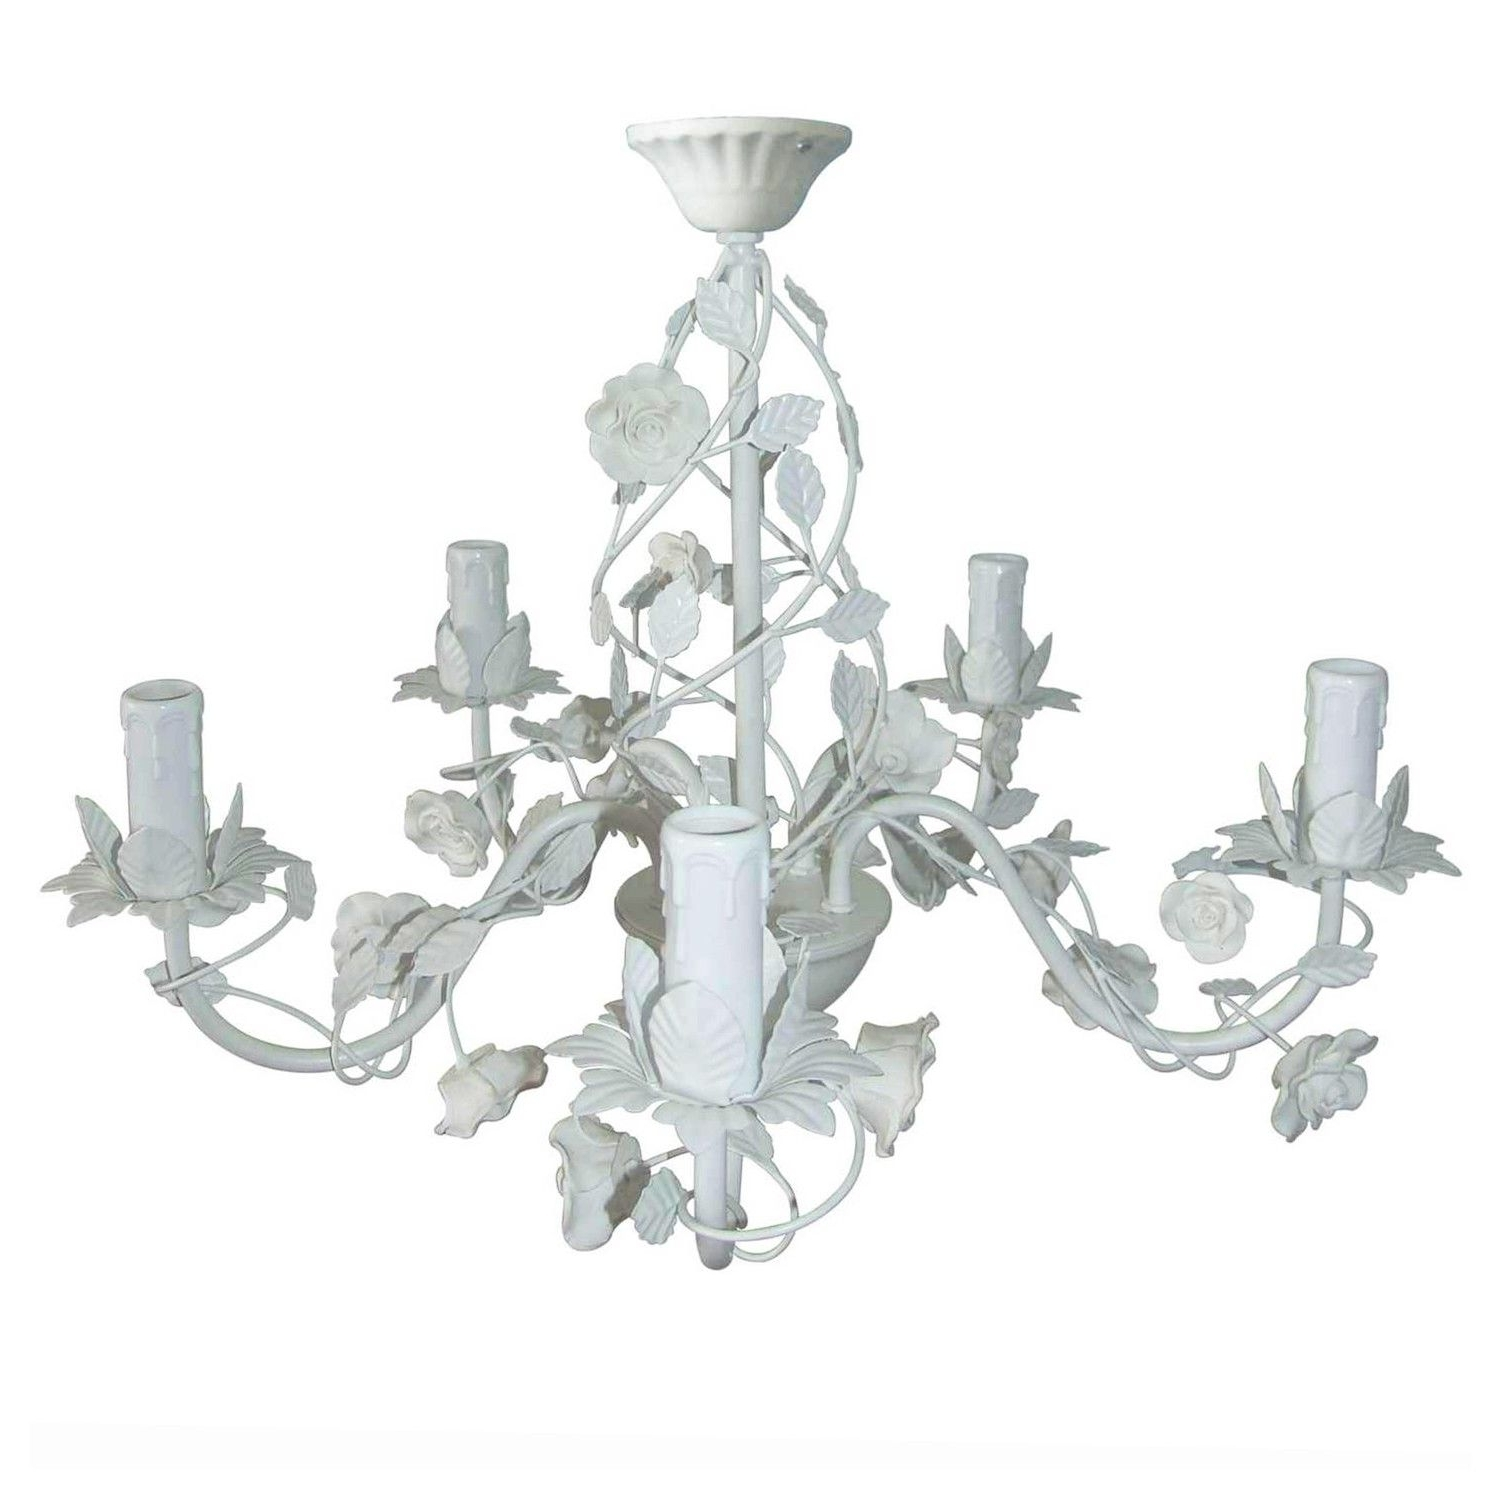 This Cream Rose 5 Arm Chandelier Is A Beautiful Light Fixture In With Regard To Favorite Cream Chandeliers (View 15 of 20)